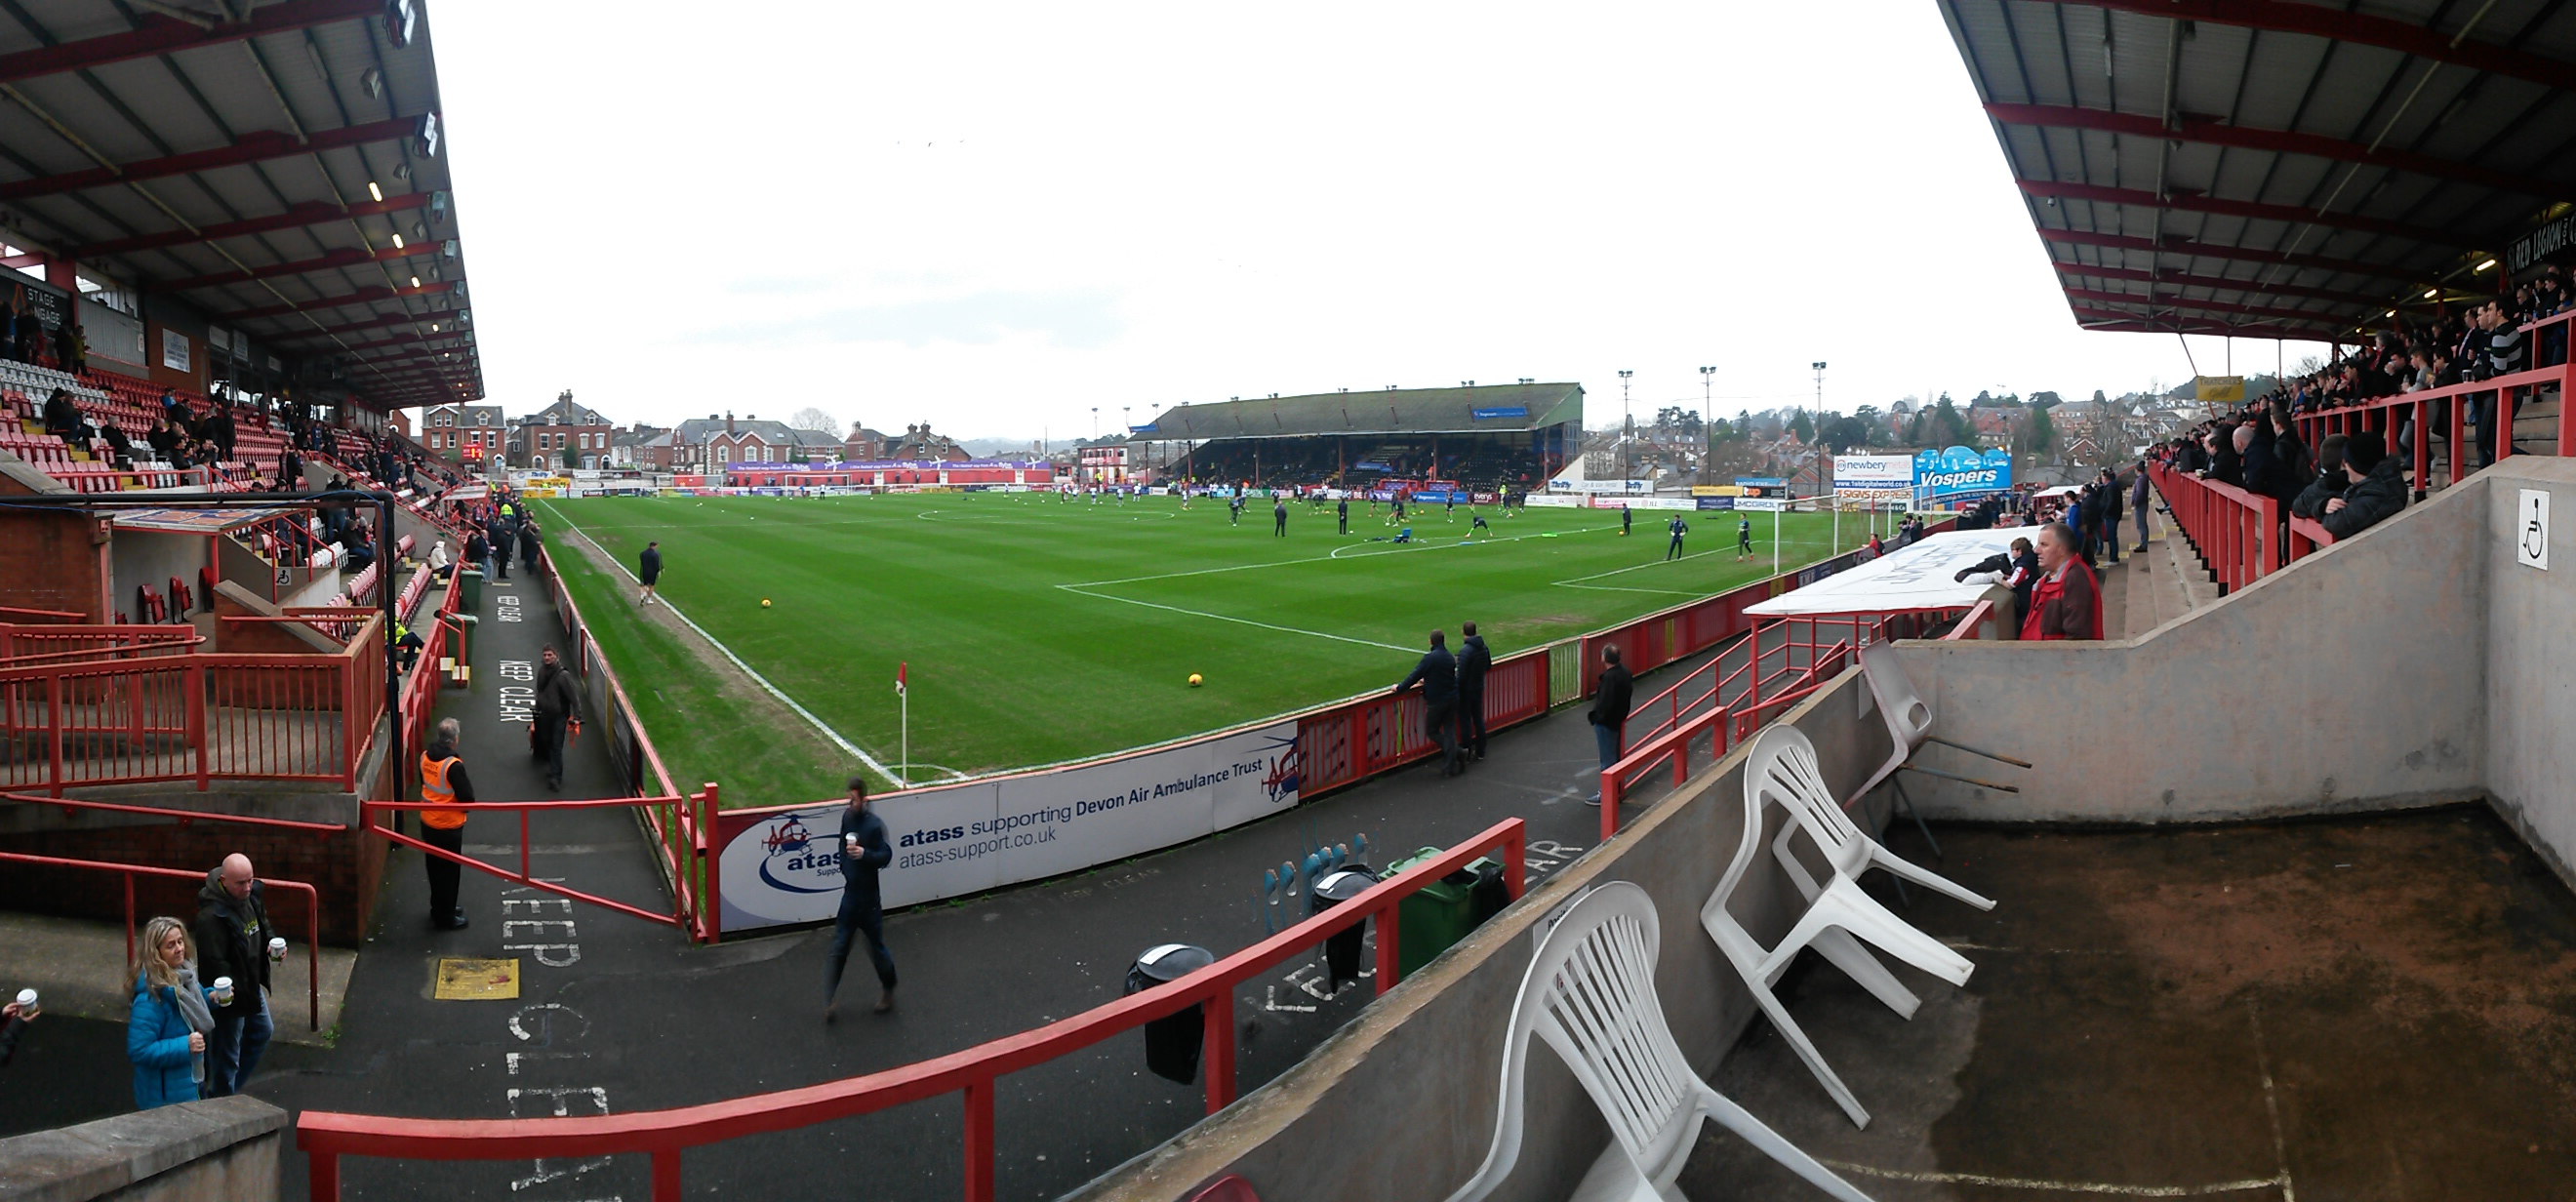 panoramic of exeter city st james' park